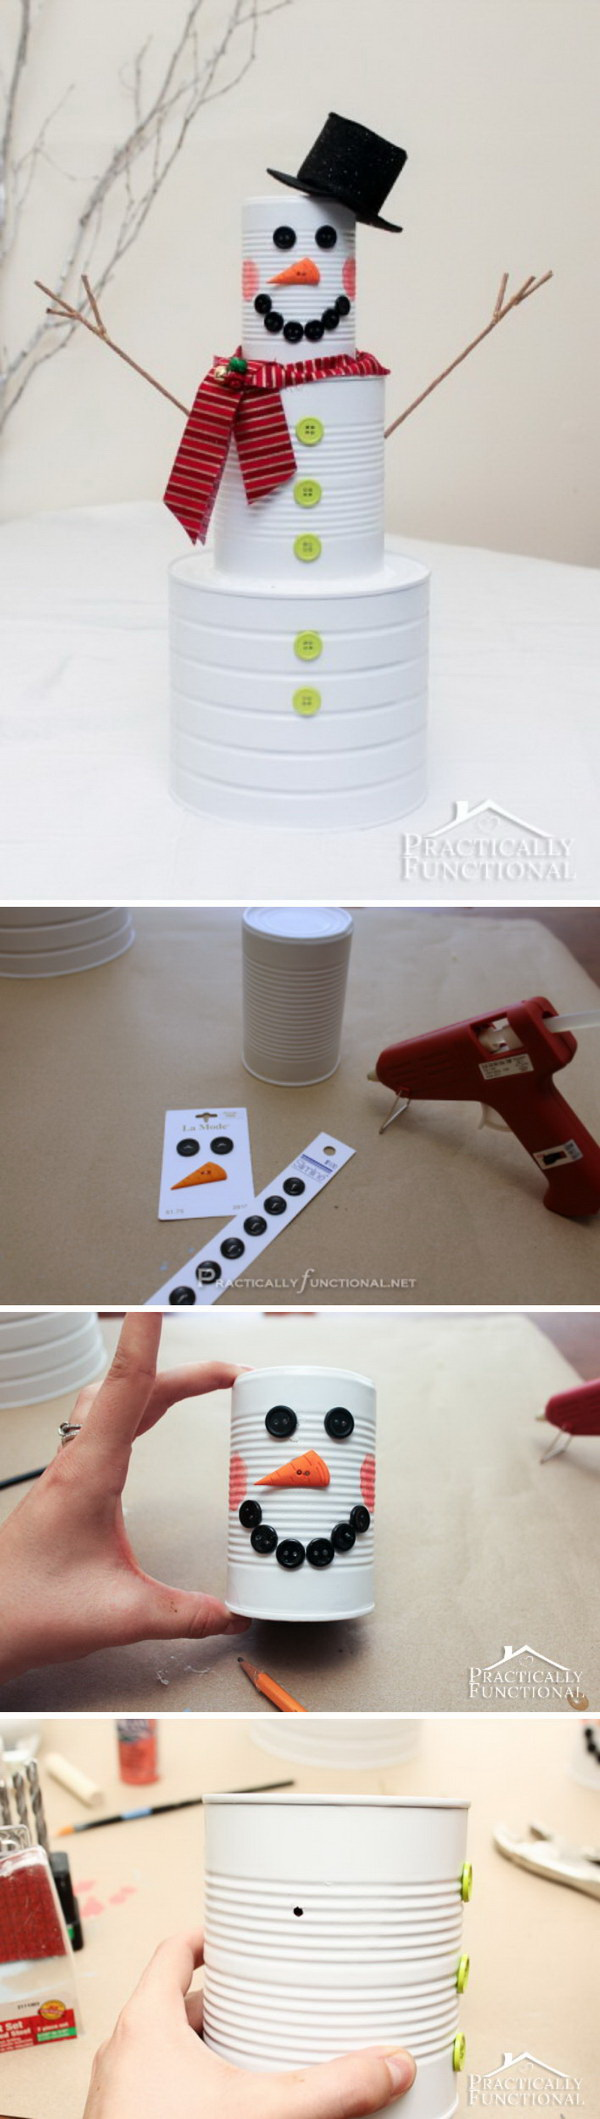 DIY Christmas Craft: Tin Can Snowman. Turn old tin cans into this cute and easy tin can snowman craft with the kids. It looks very easy to make!